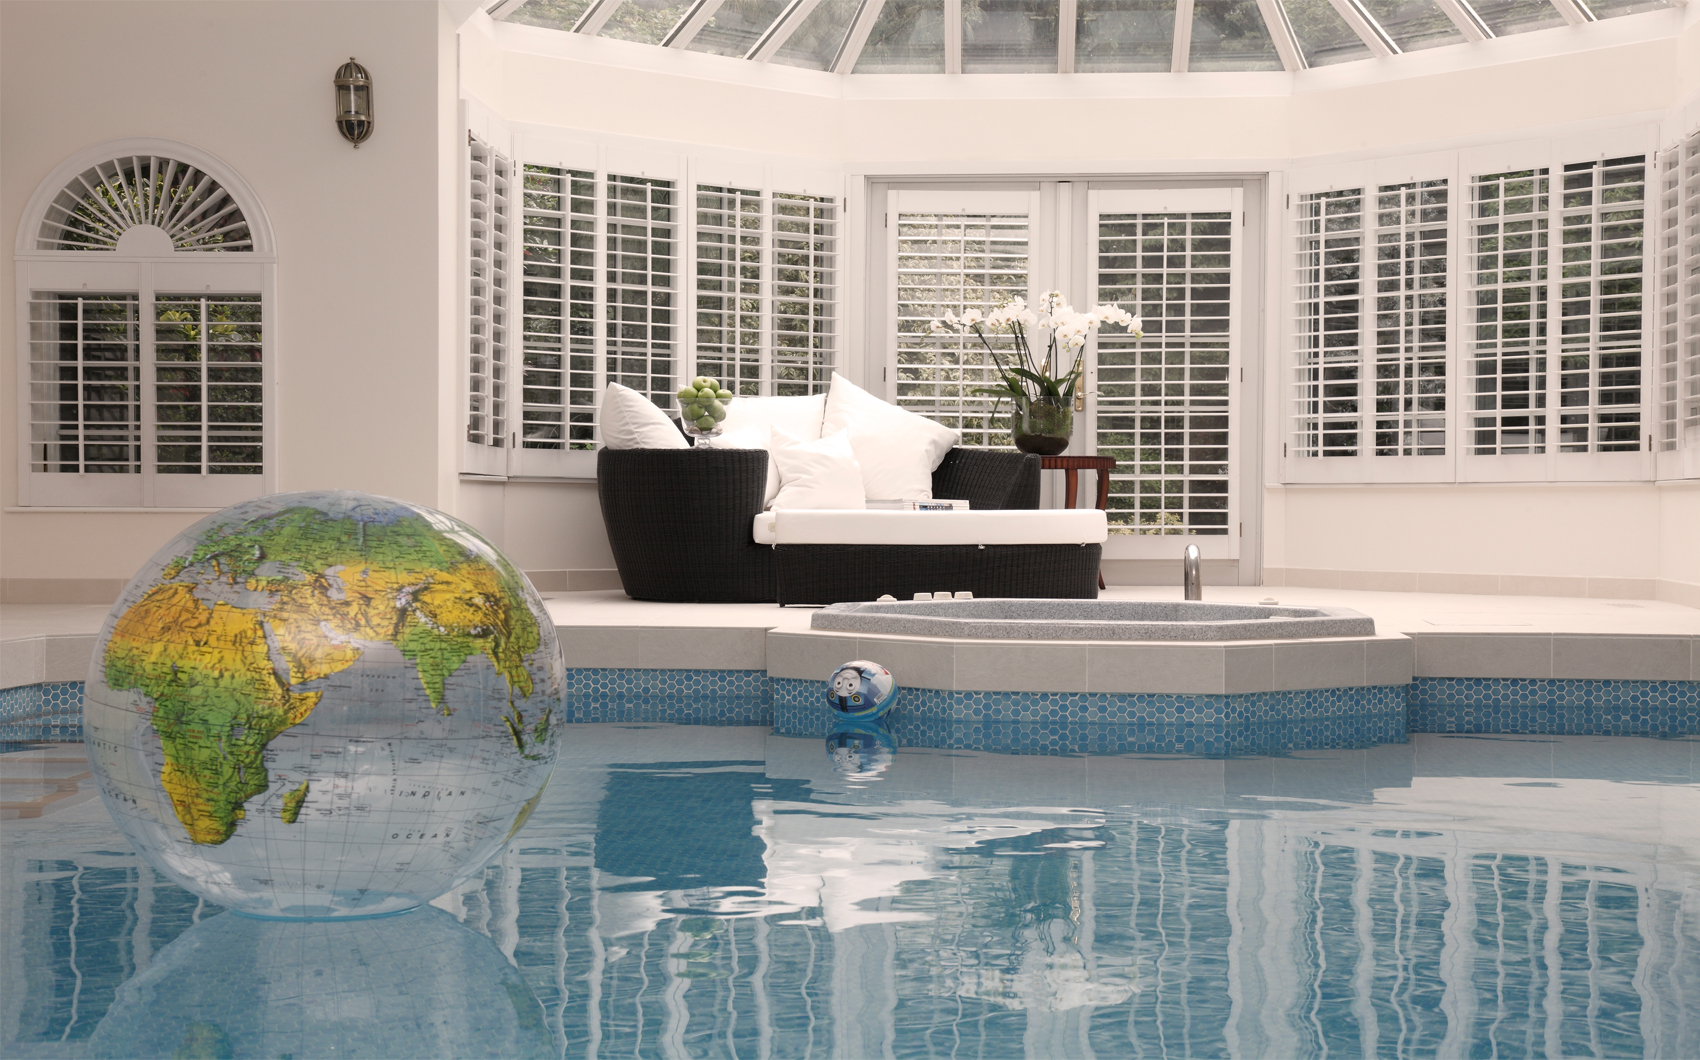 Interesting swimming pool design london photos simple for Pool design london ontario